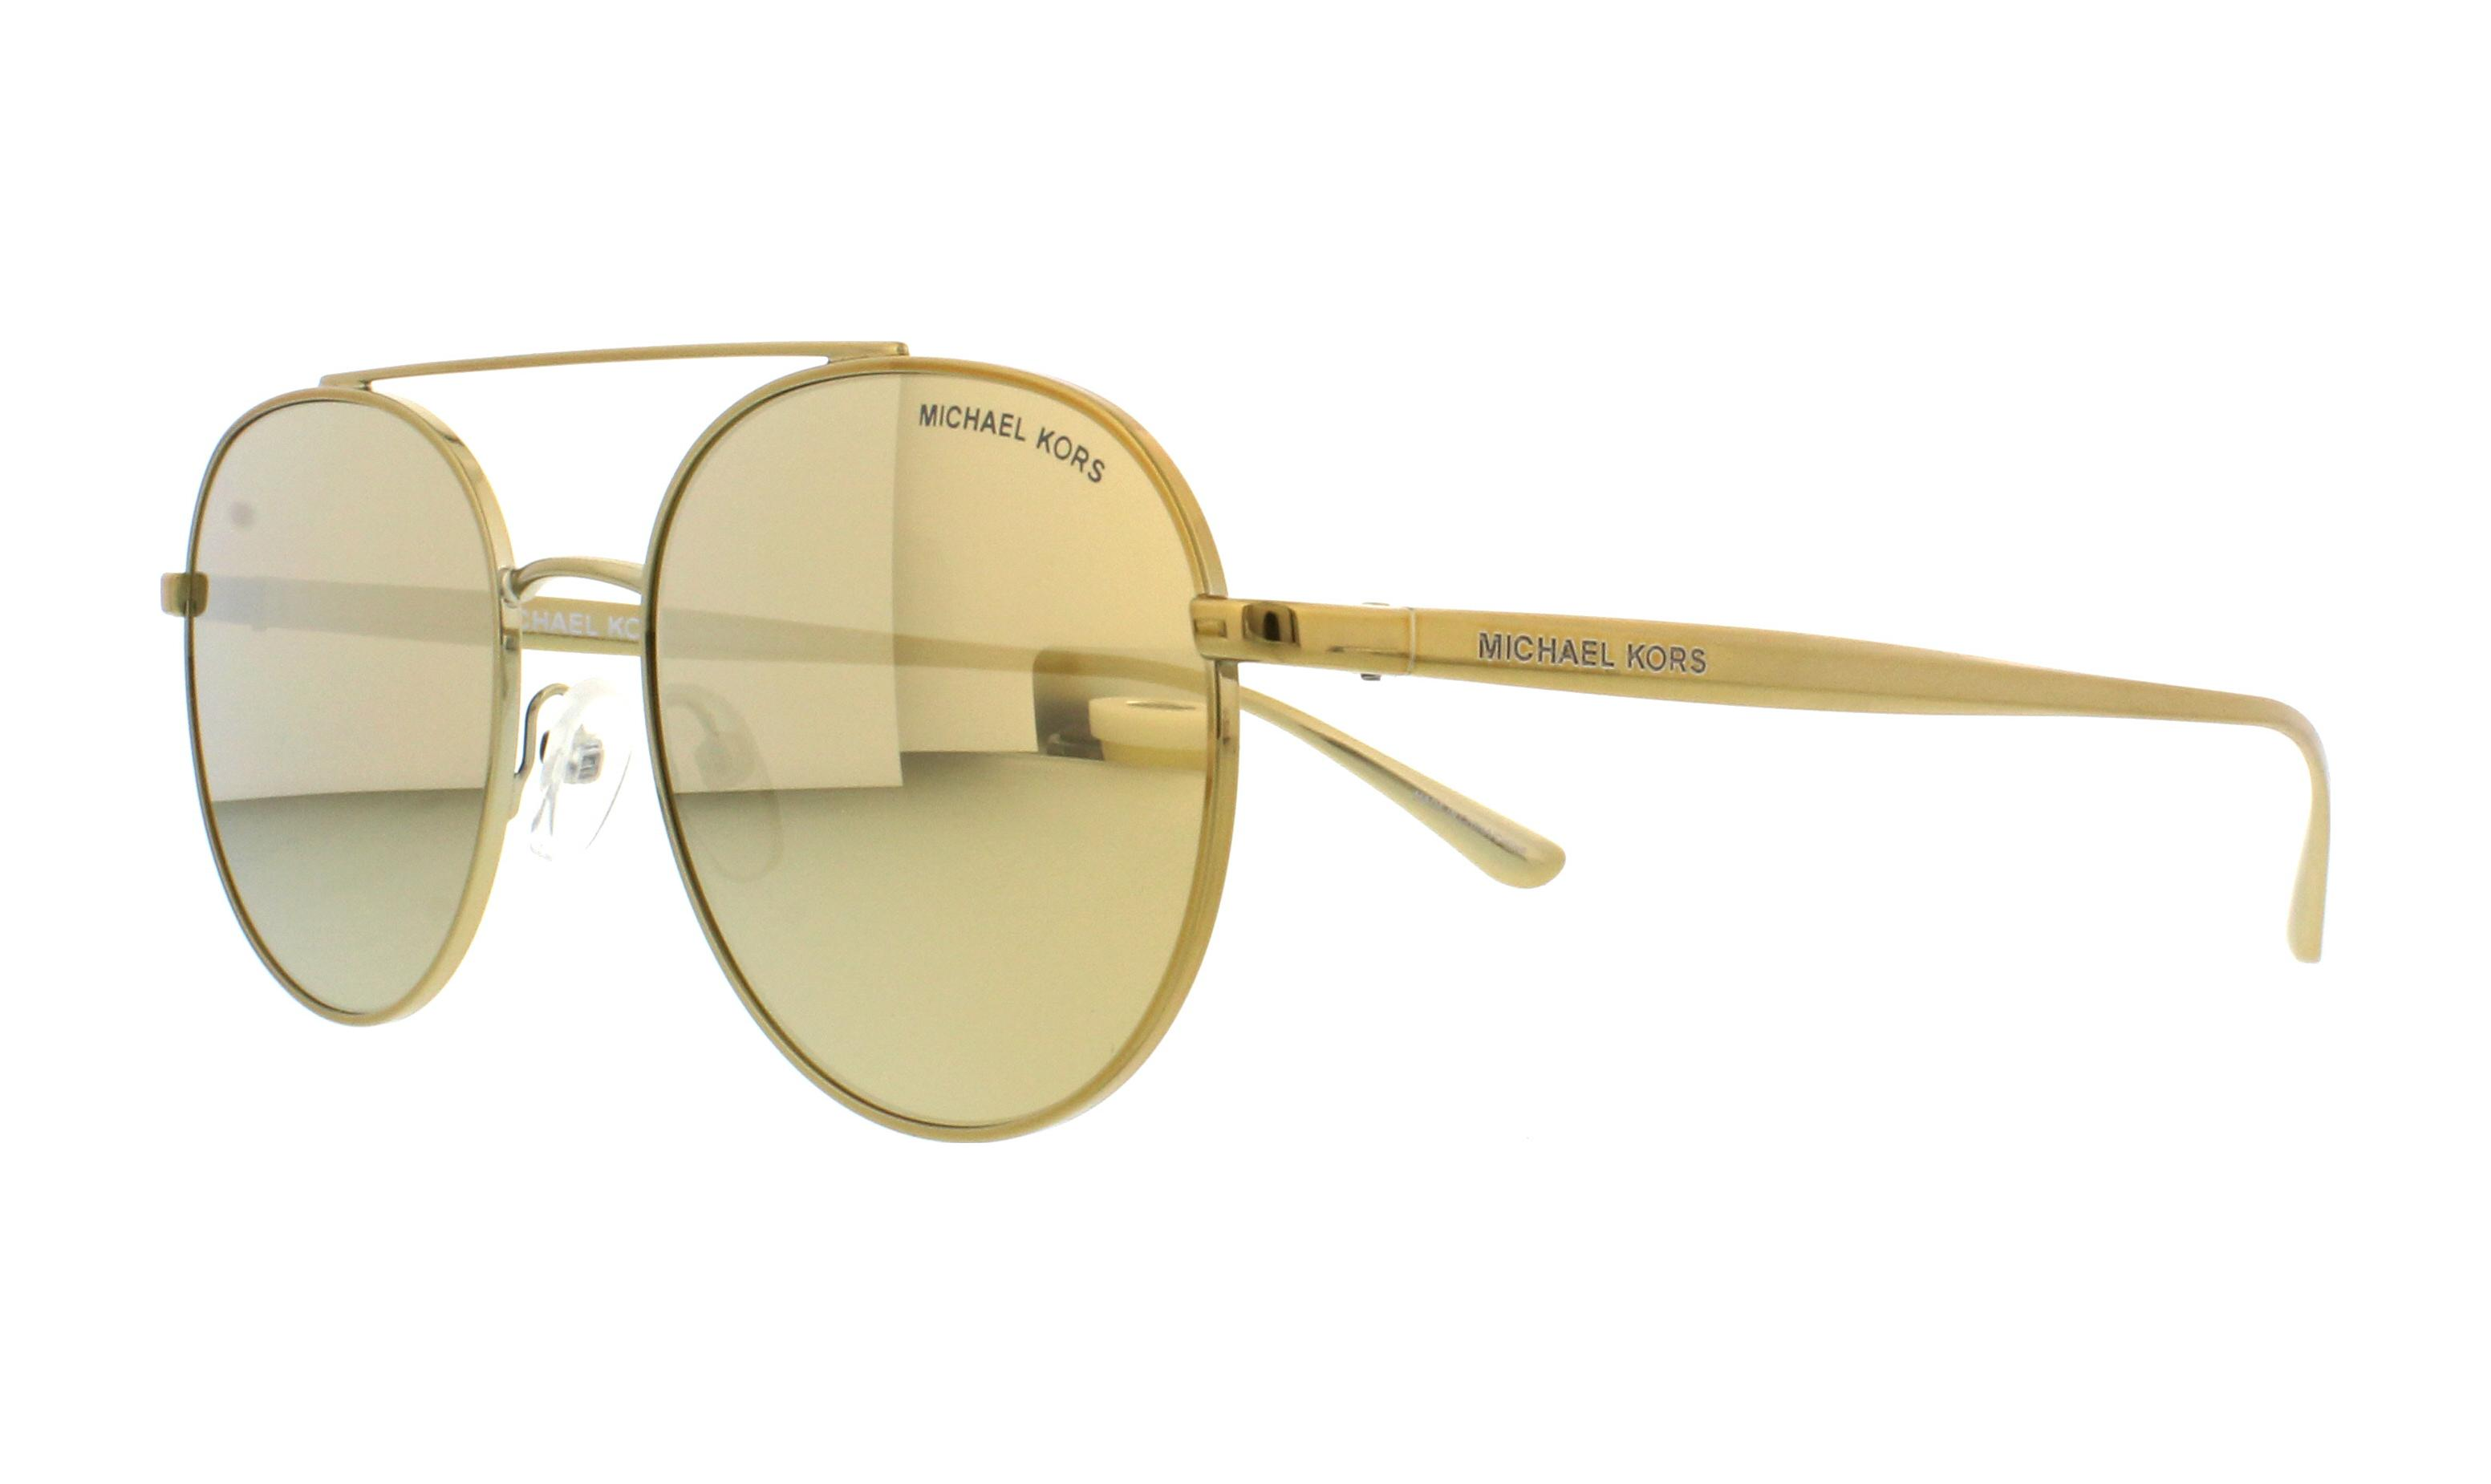 fb6879dd2ae MICHAEL KORS Sunglasses MK1021 LON 11687P Gold-Tone 53MM ...